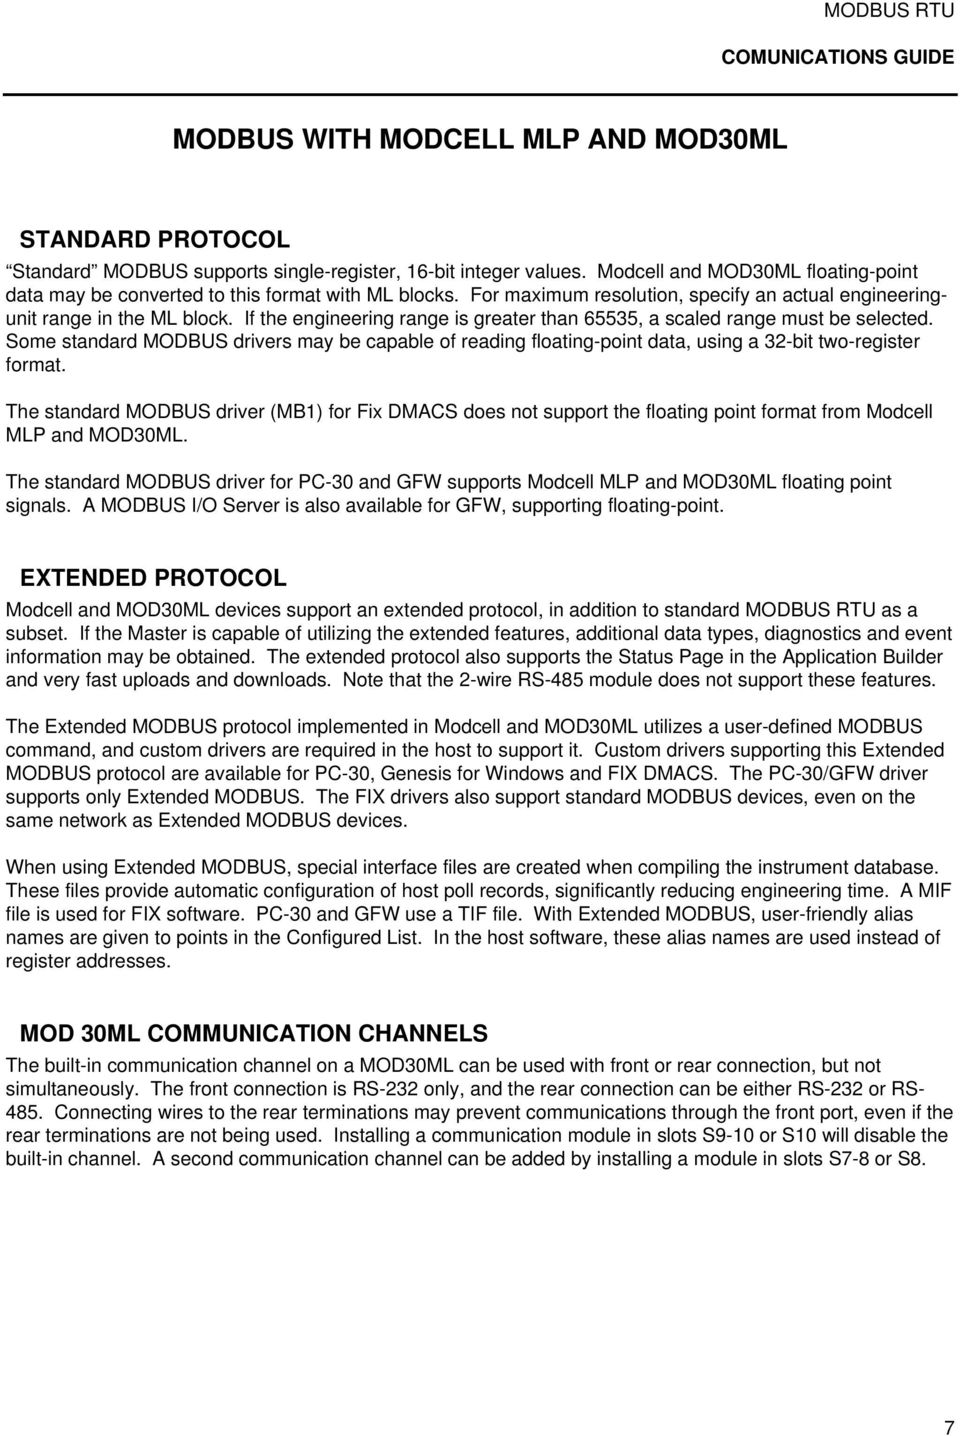 MODBUS RTU  Communications Guide  for use with MODCELL, MOD